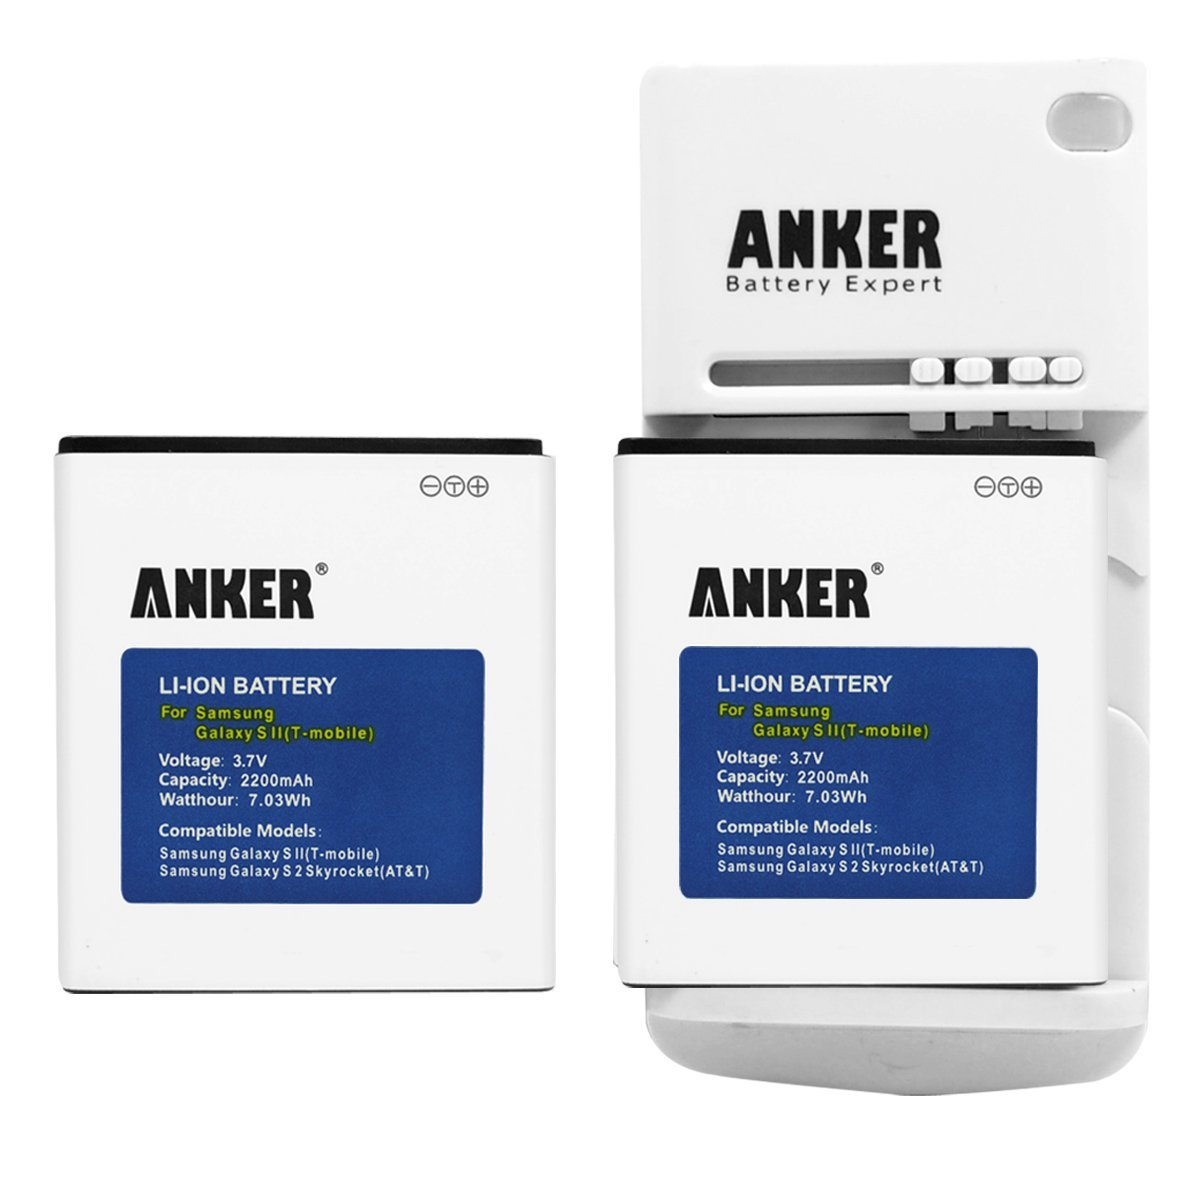 Anker Universal Battery Charger